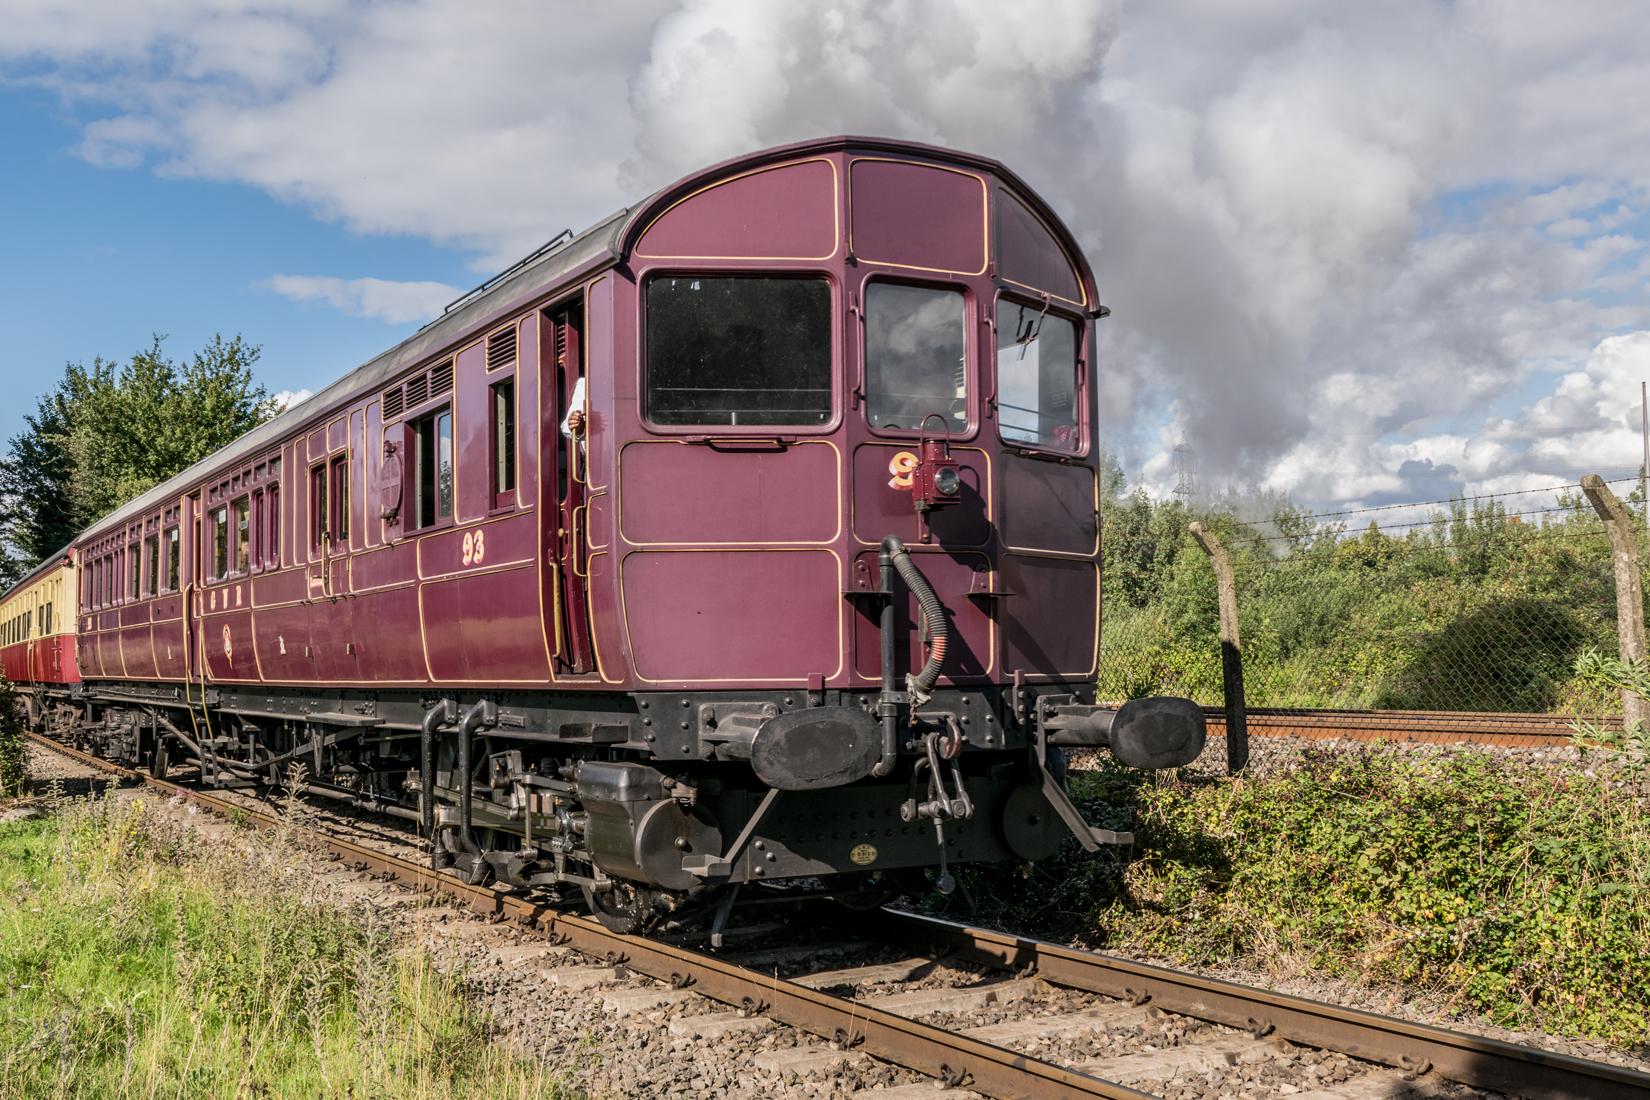 Steam Railmotor No. 93 working hard on the Demonstration Main Line